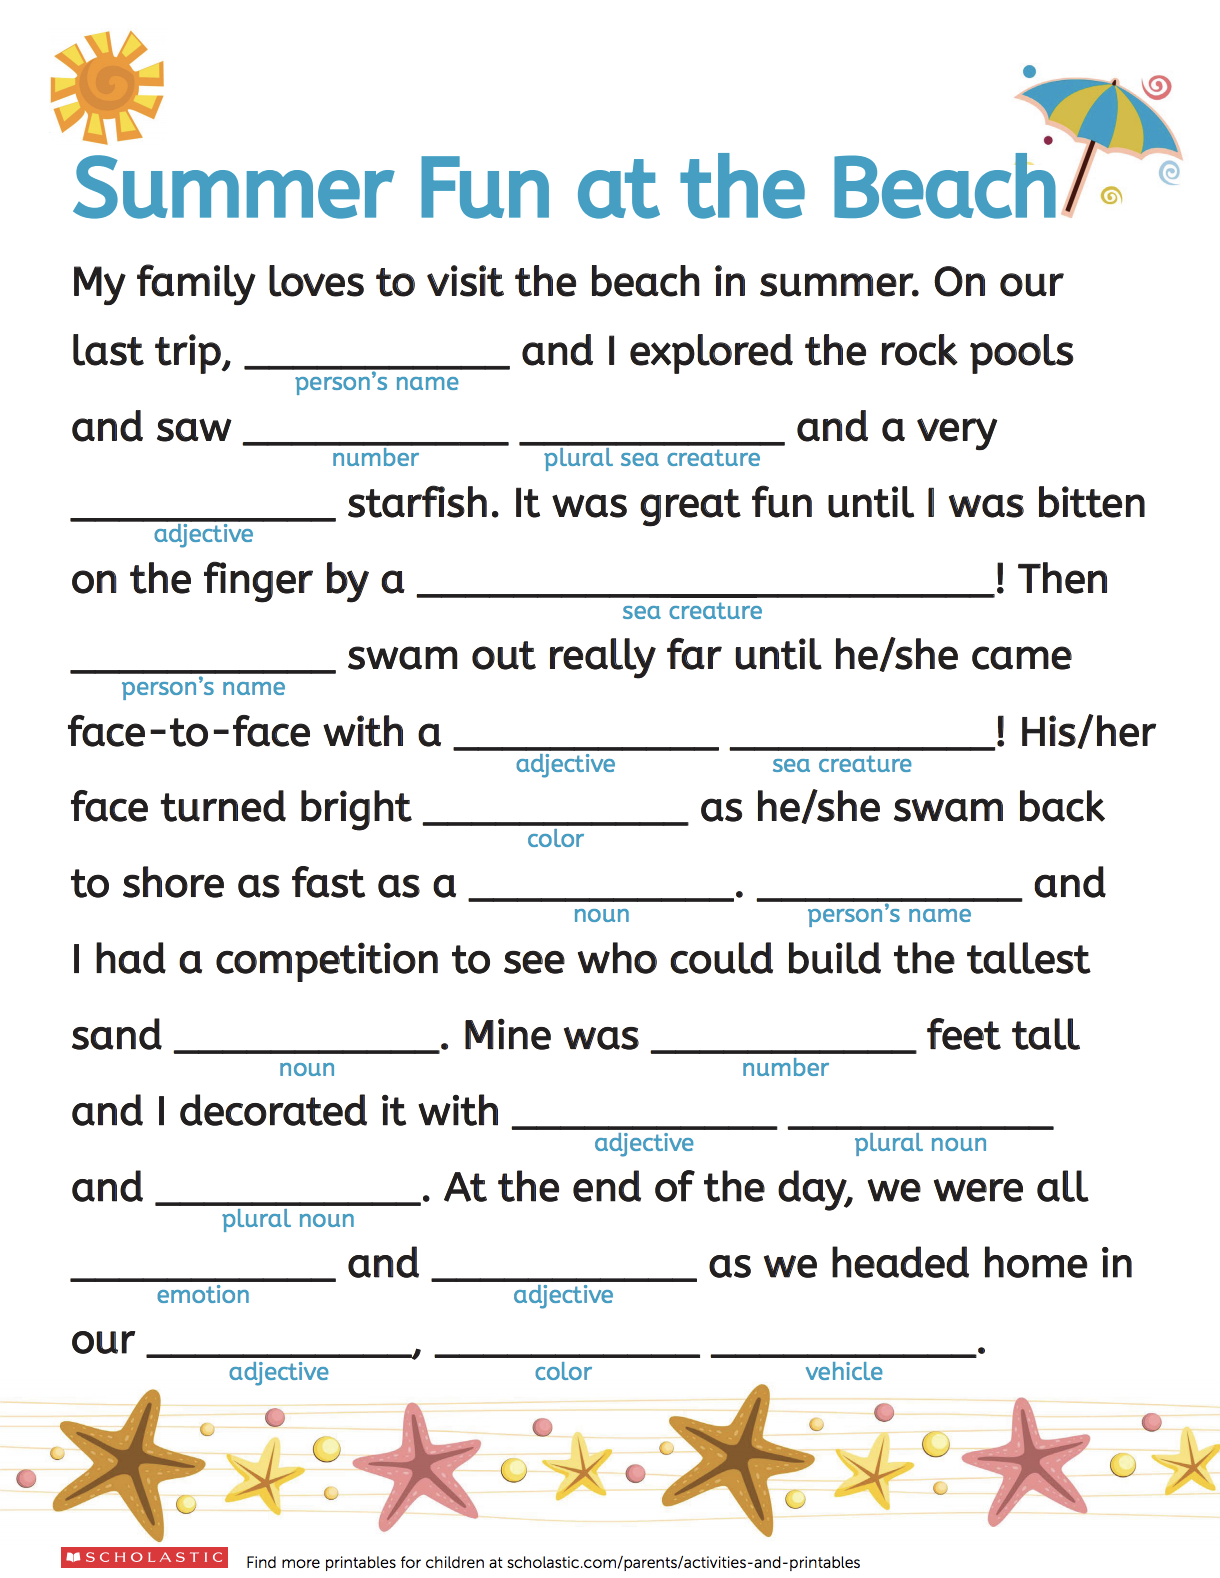 37d9d339fc Summer Fun With Mad Libs | Printables: Ages 3-5 | Mad libs, Summer ...